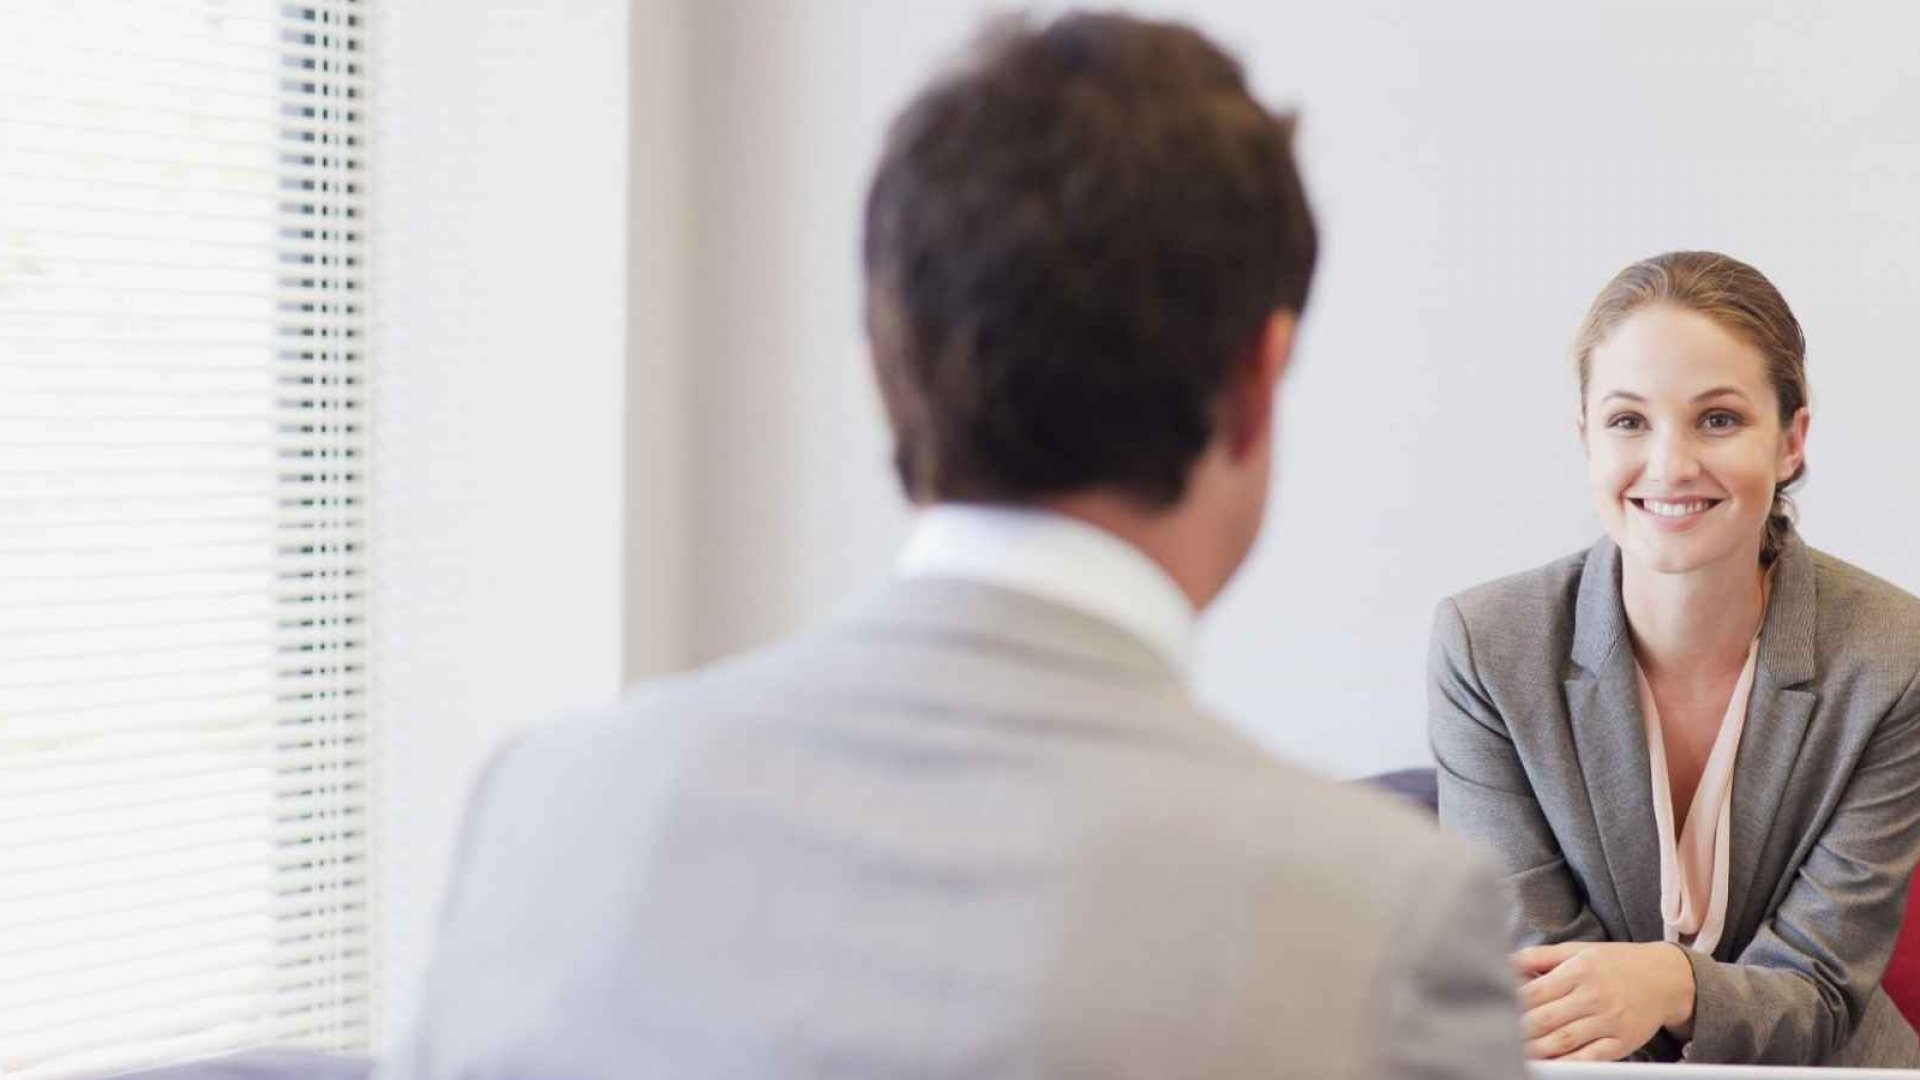 Want to Ace Your Job Interview? Here Are 11 Ways to Stay Calm